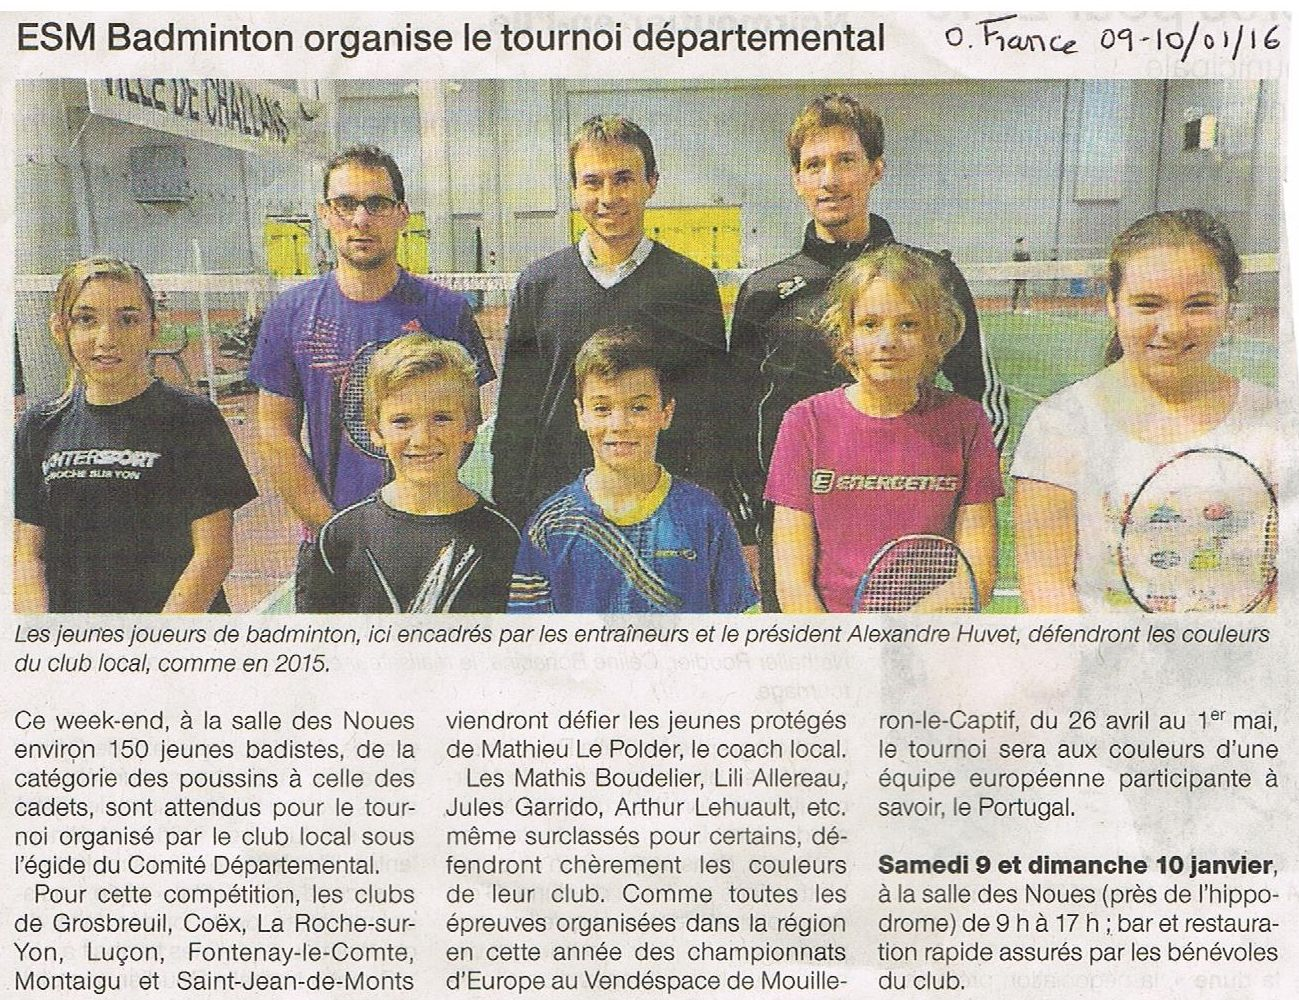 Ouest france 09 10 01 16